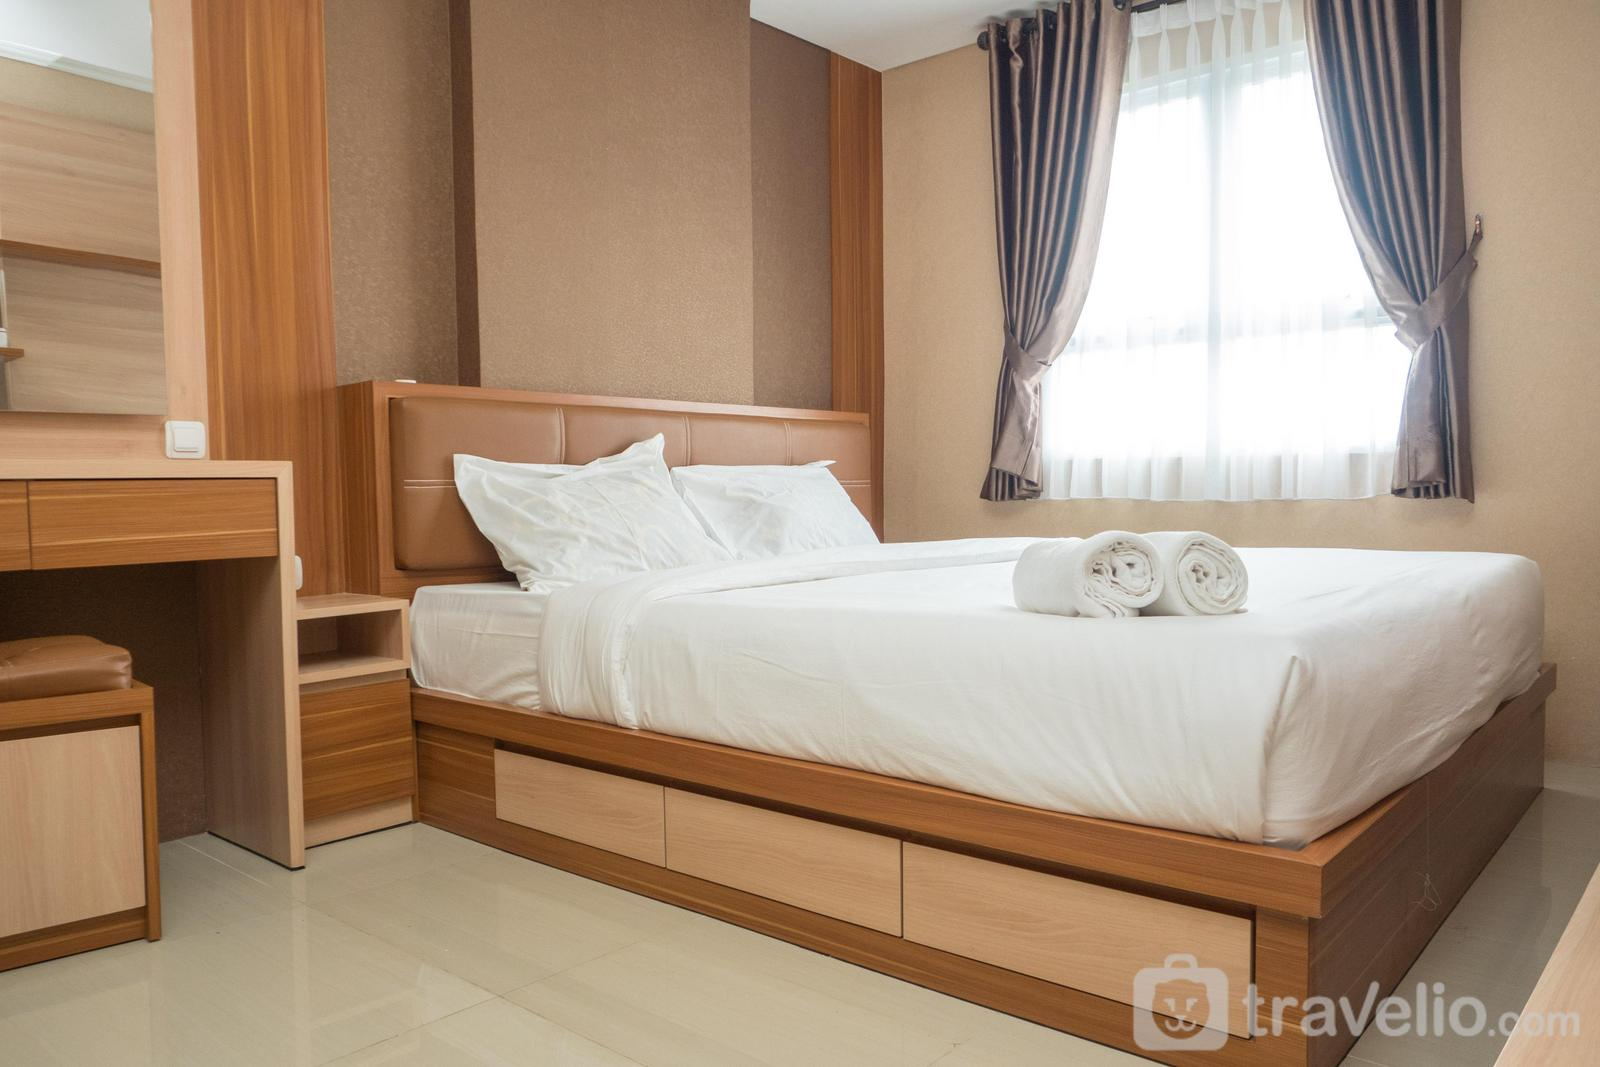 Gateway Pasteur Apartment - Homey 3BR with Sofa Bed near Pasteur Exit Toll at Gateway Pasteur Apartment By Travelio